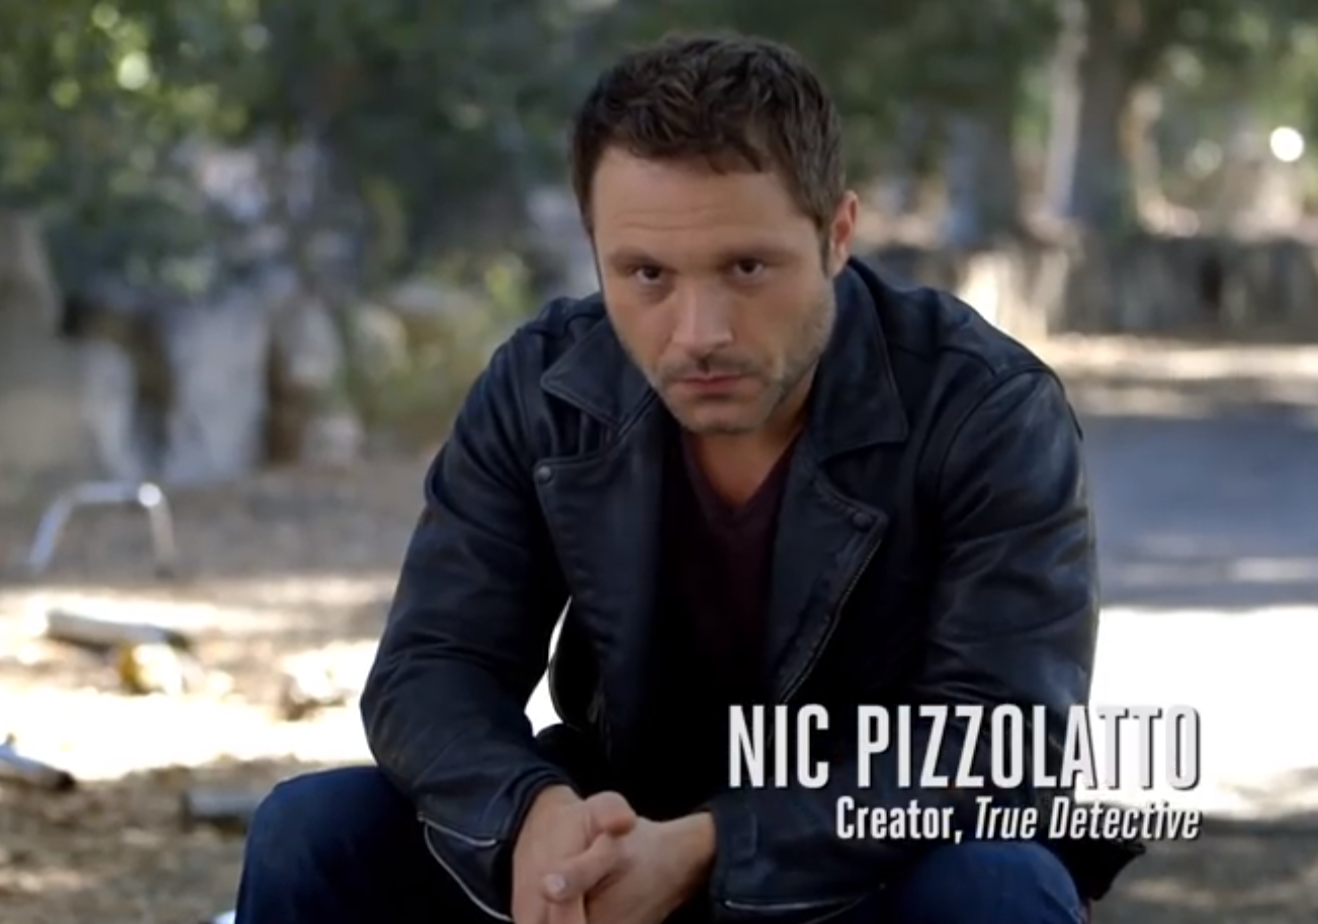 nic pizzolatto interview